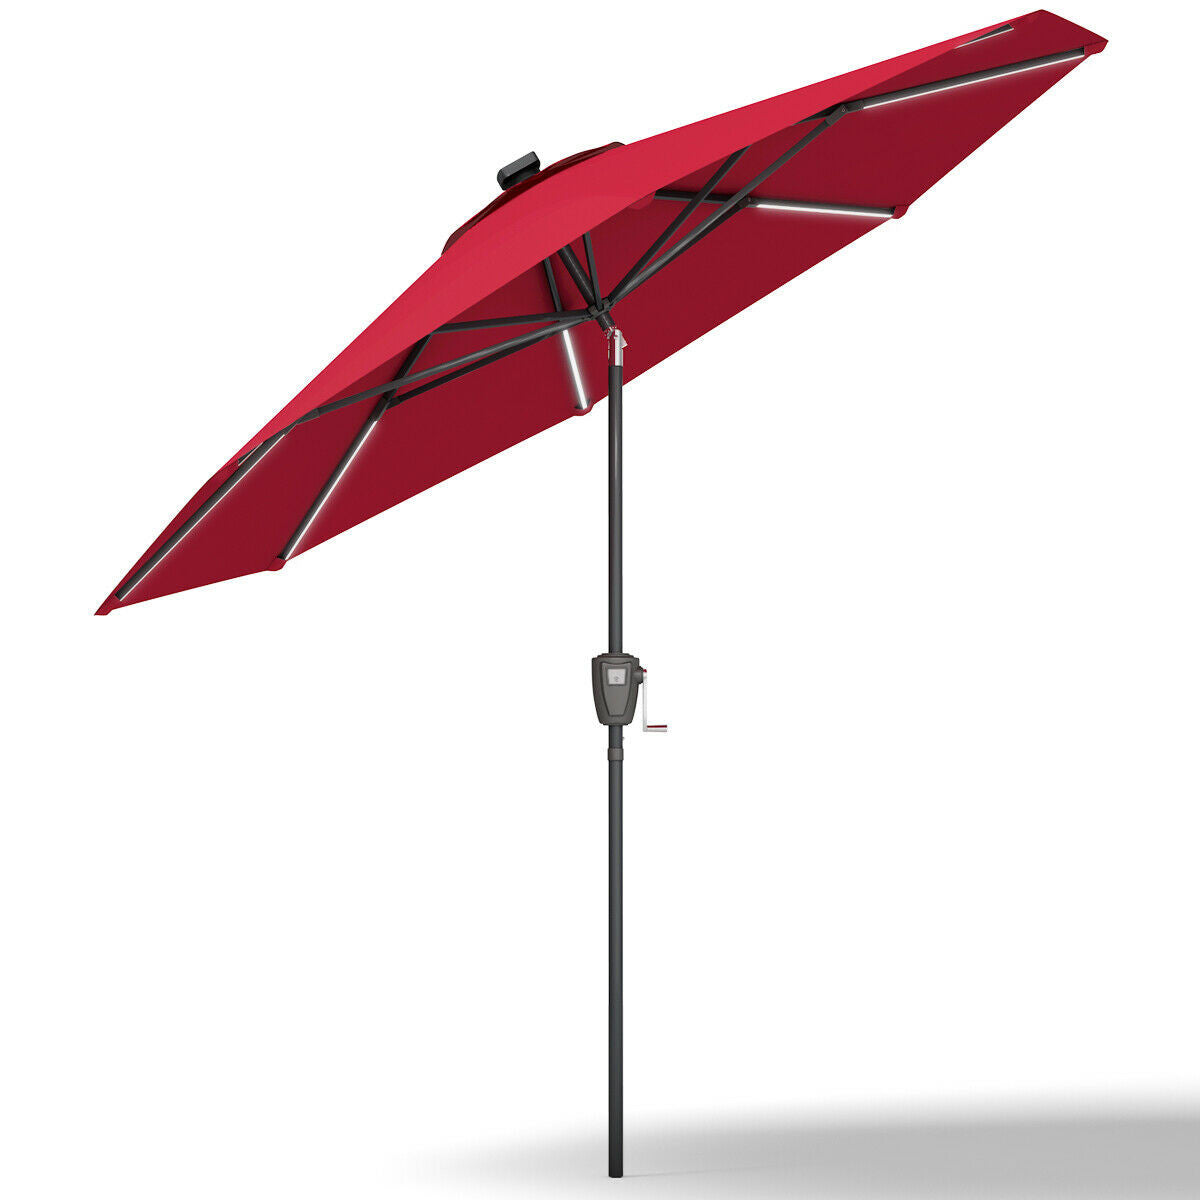 Premium Patio Umbrella Outdoor Backyard Garden Solar Umbrella Sun Shade Cover - Morealis